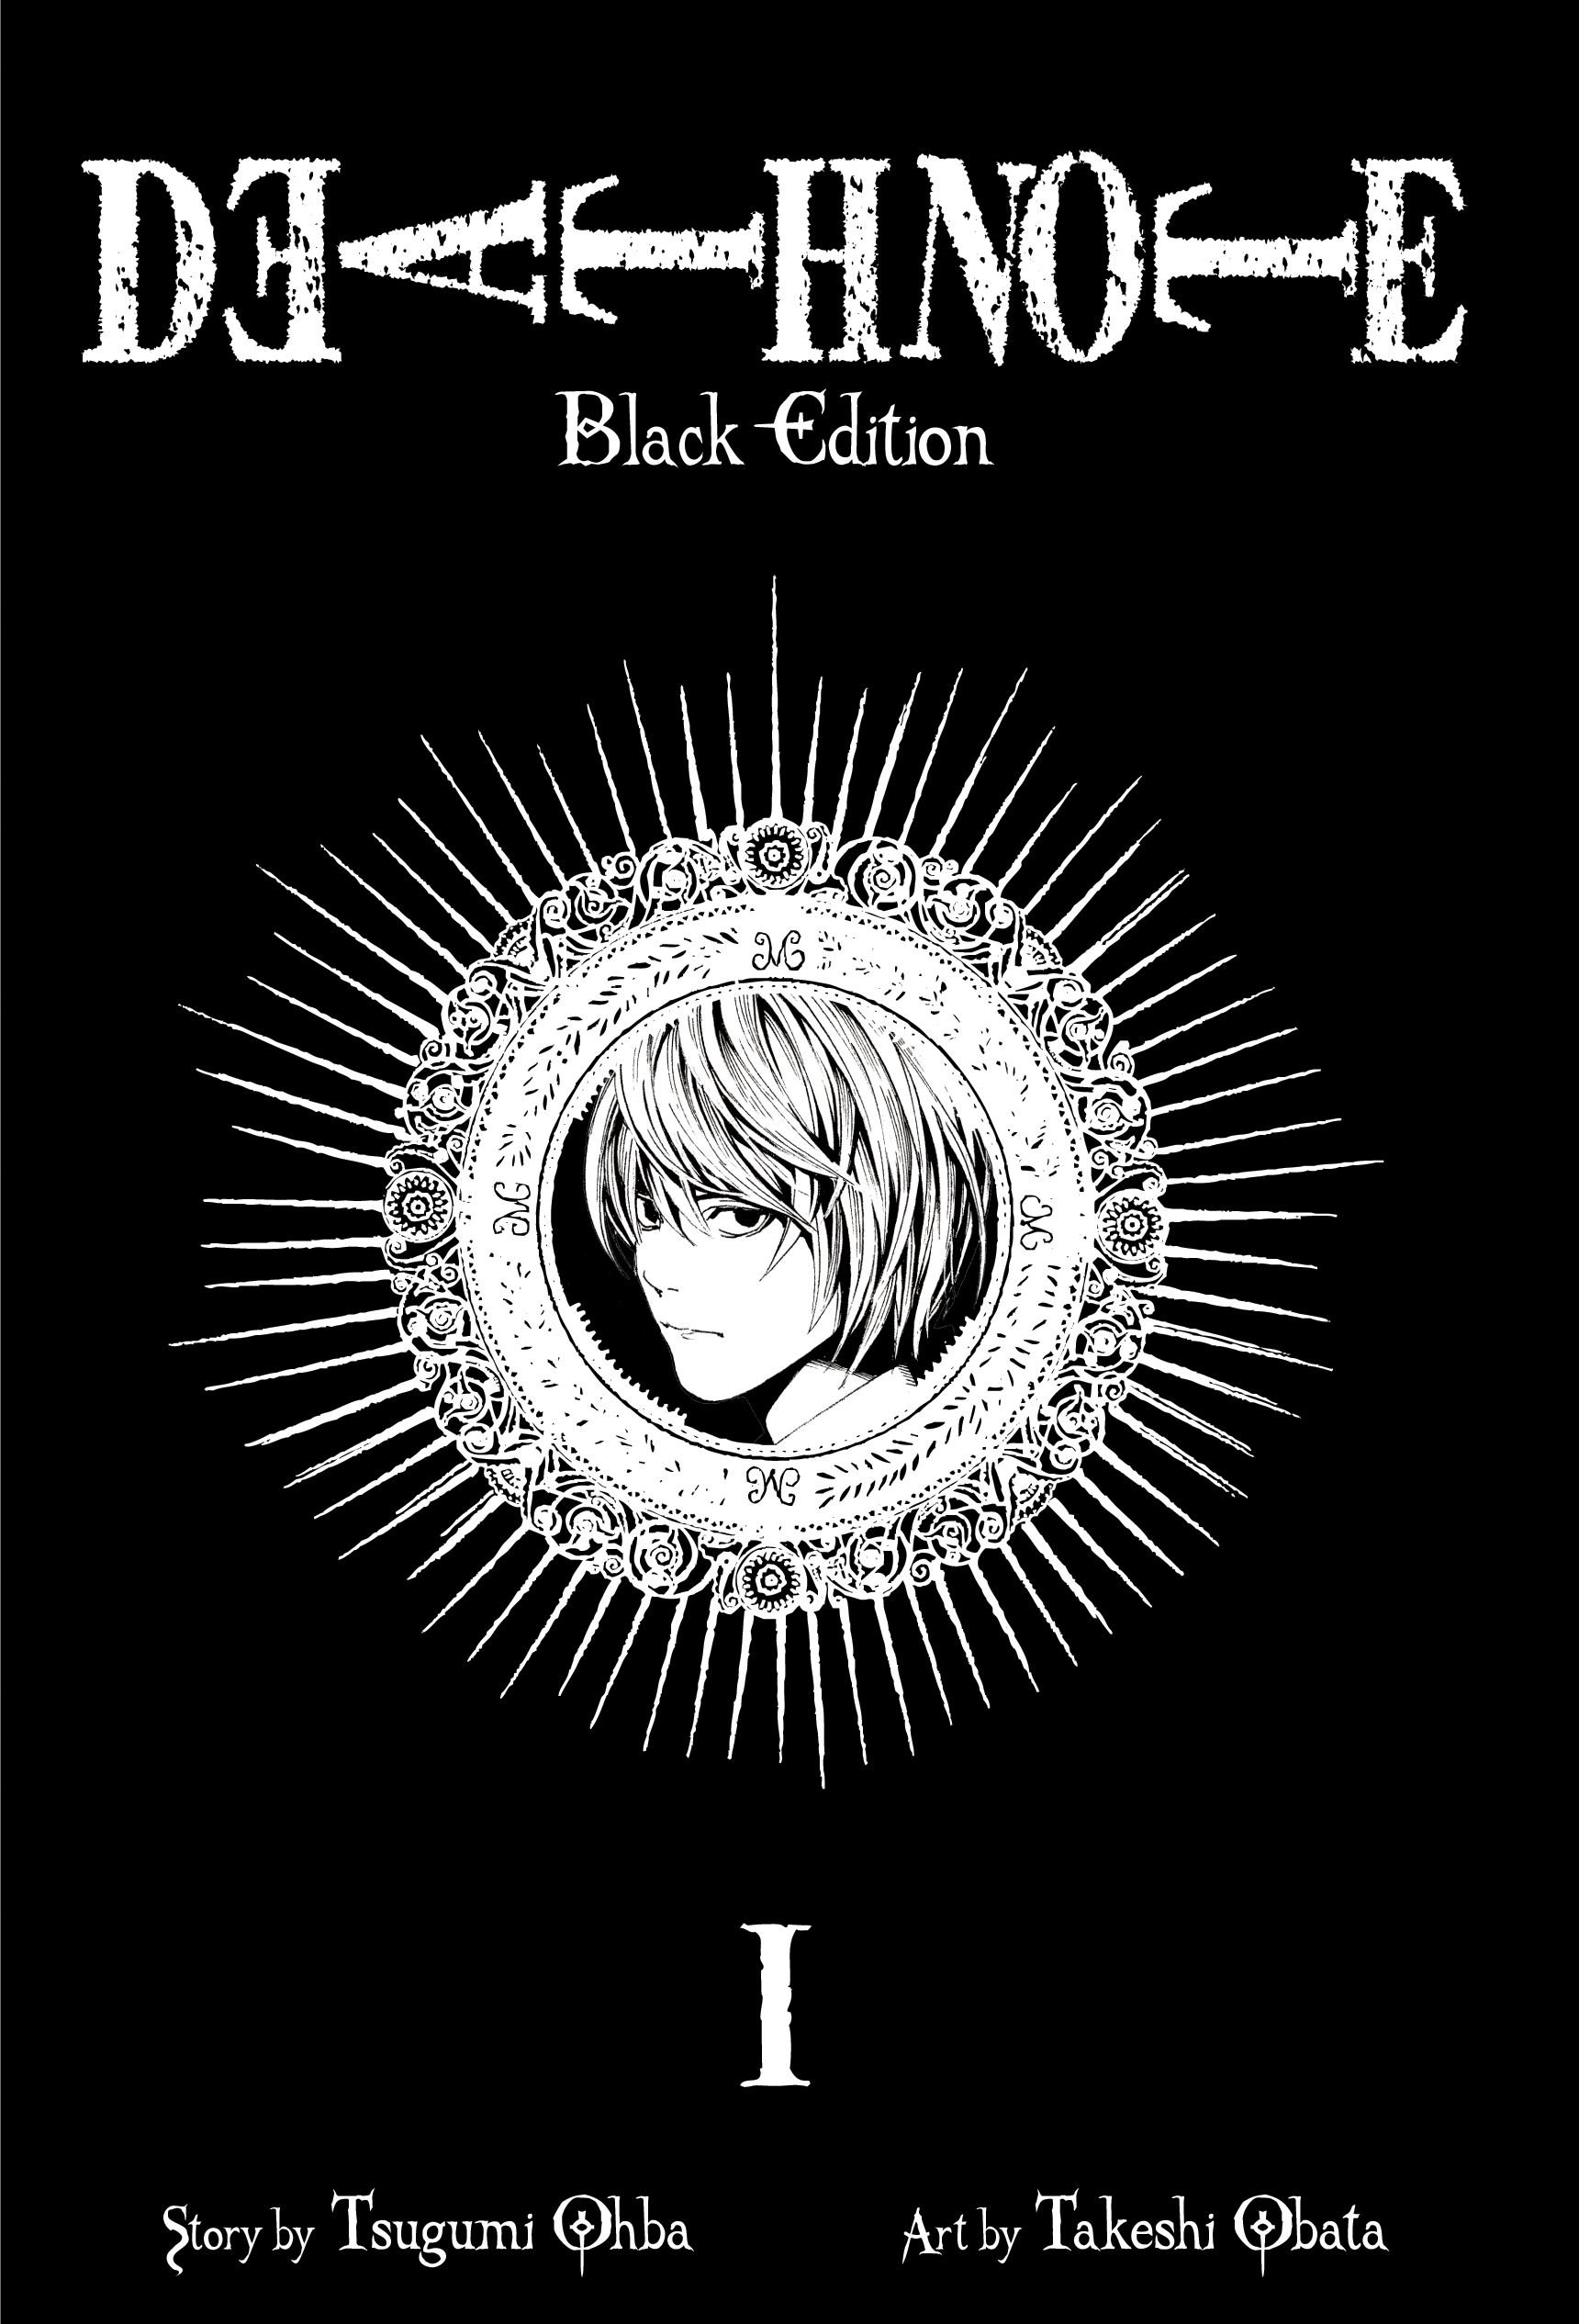 Death Note Black Ed Tp Vol 01 C 1 0 Tsugumi Ohba The Blobz Guide To Electric Circuits Science Pinterest Takeshi Obata Books